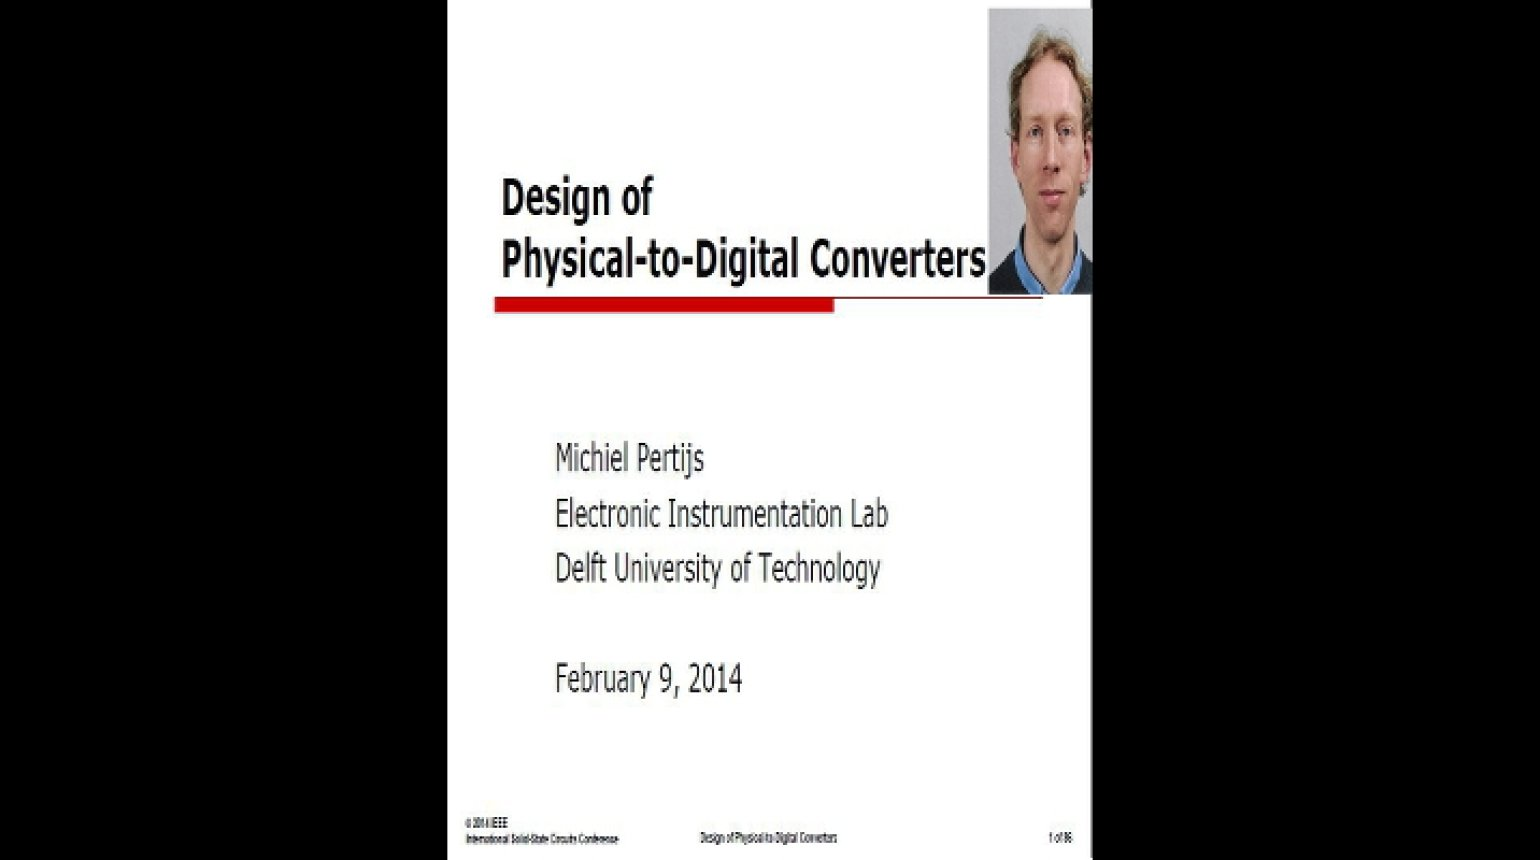 Design of Physical-to-Digital Converters Video